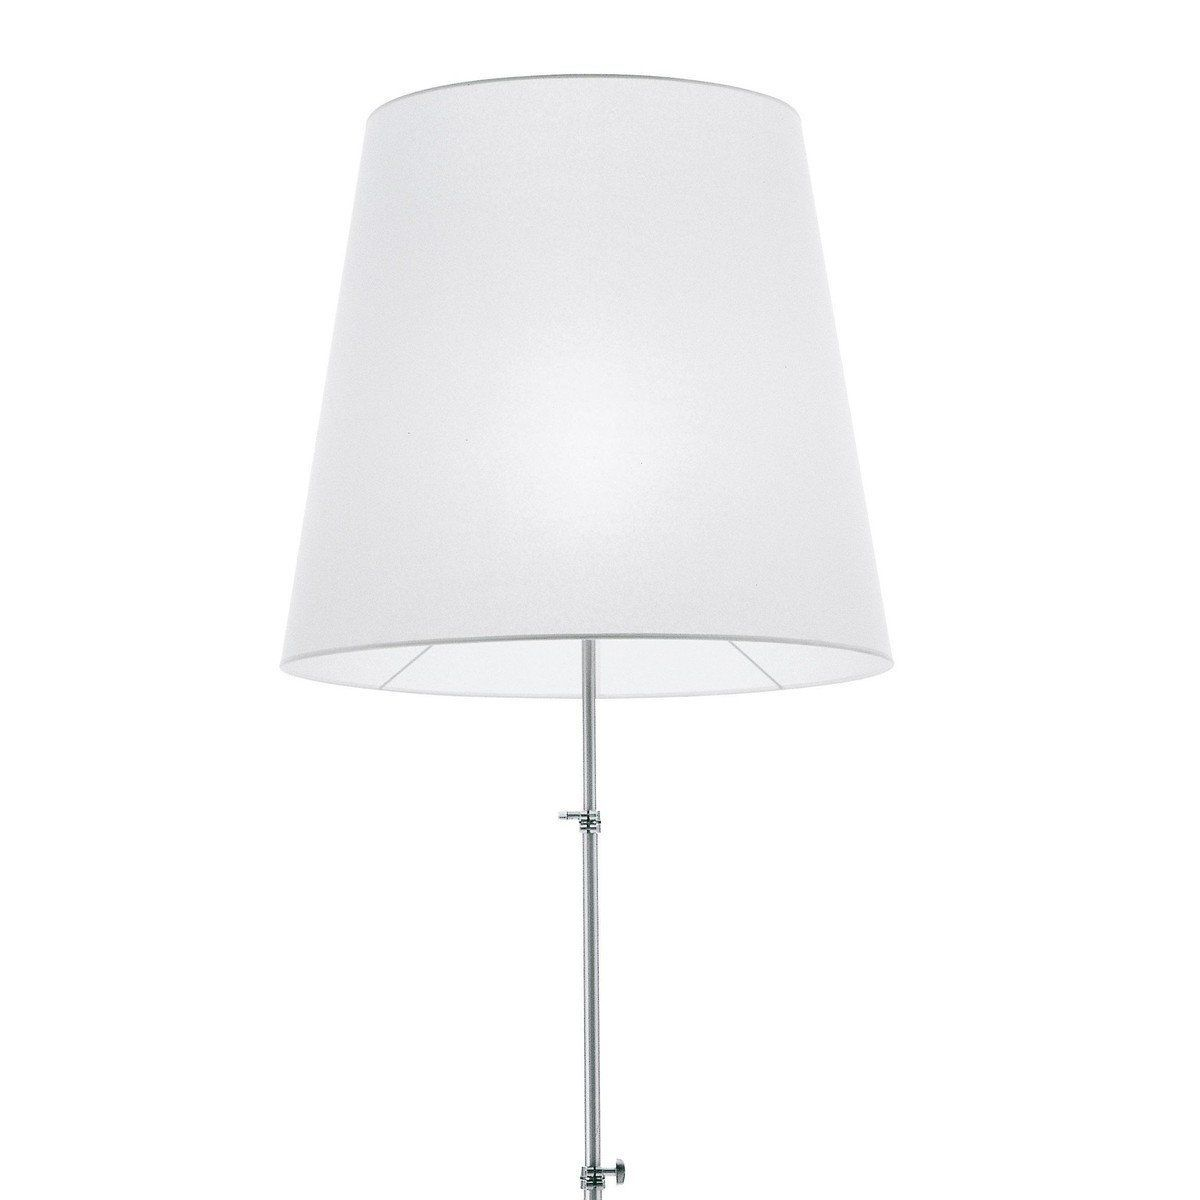 Pallucco   Baby Gilda Floor Lamp   White/synthetic Parchment ...